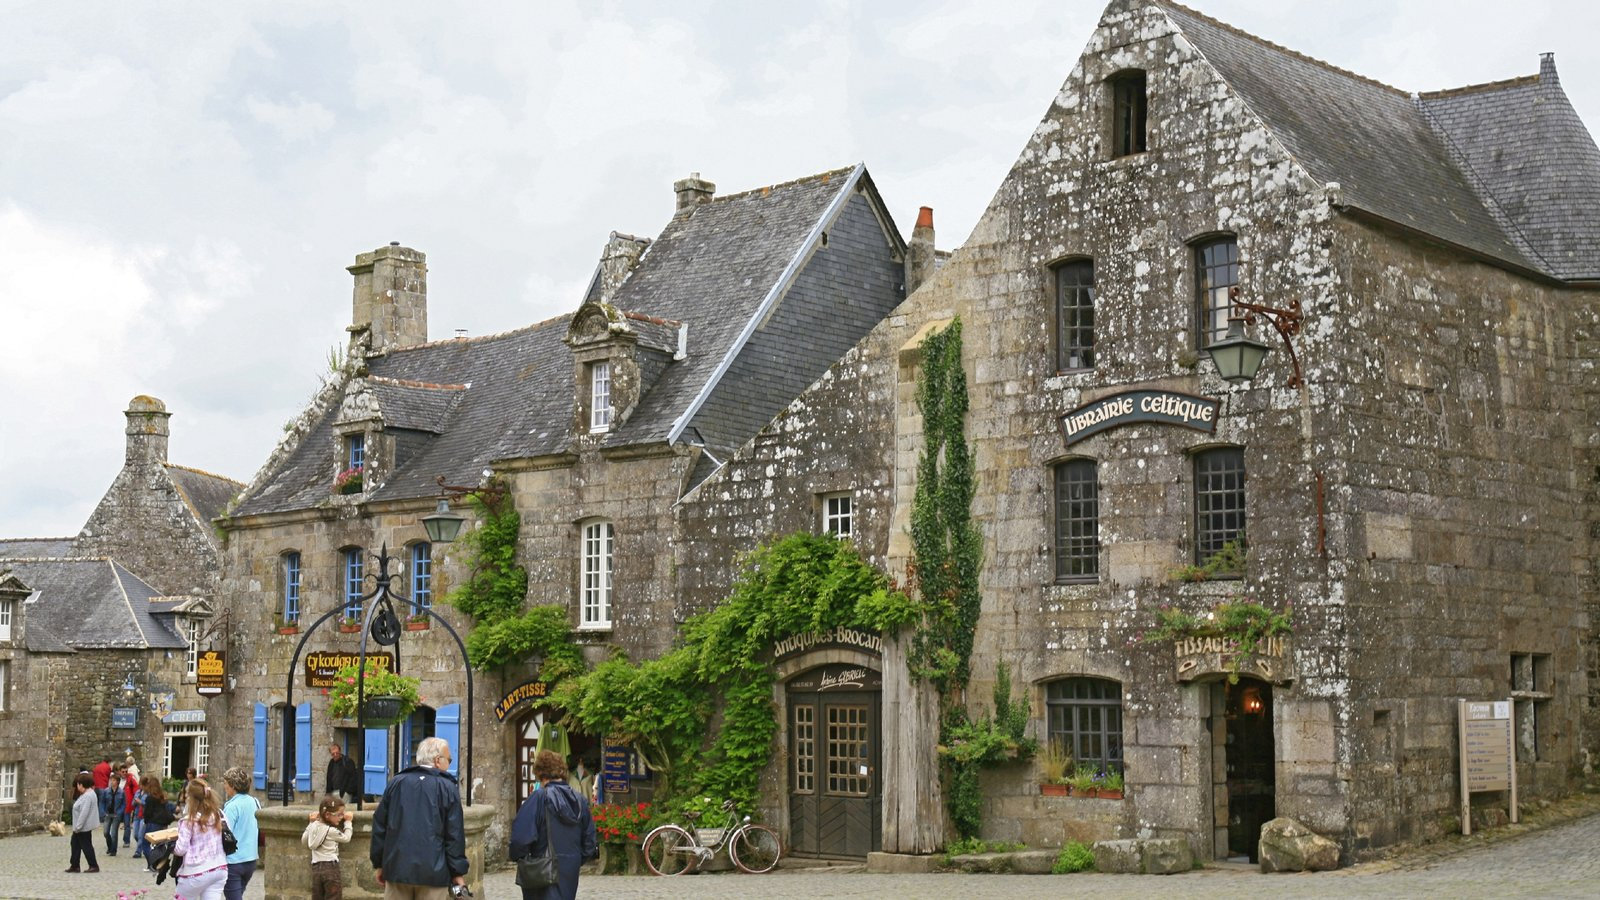 Quimper - Southern Finistere which includes street scenes and heritage elements